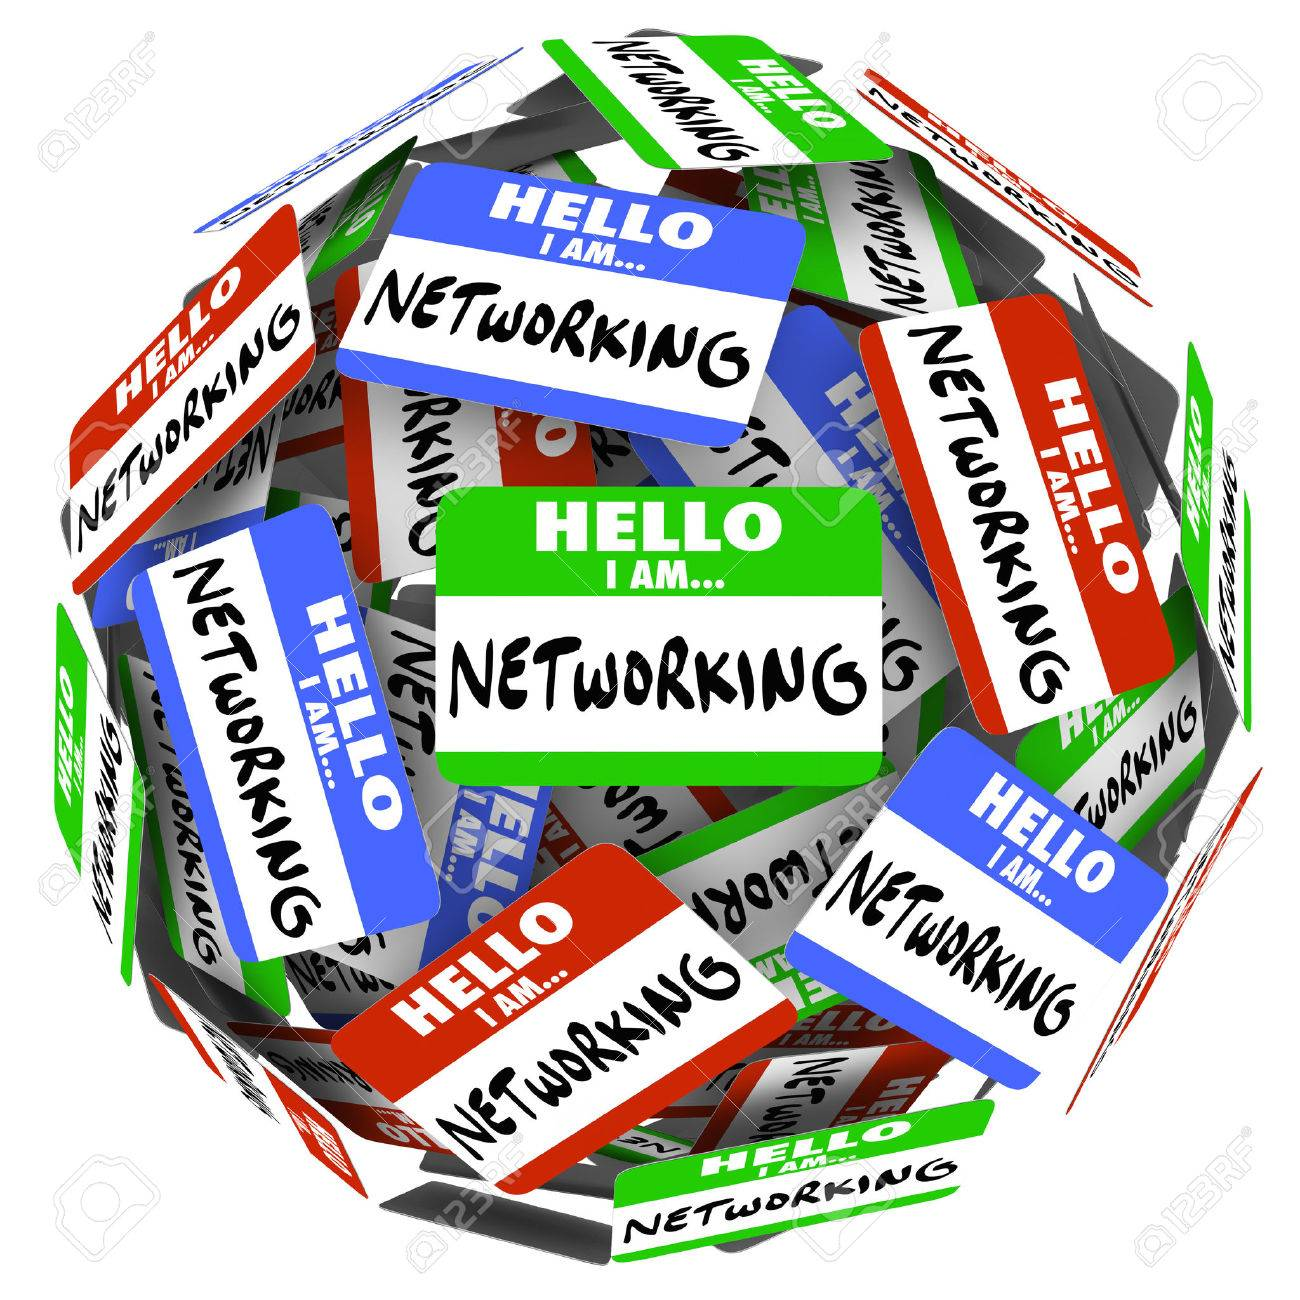 hello i am networking nametags and stickers in a ball or sphere